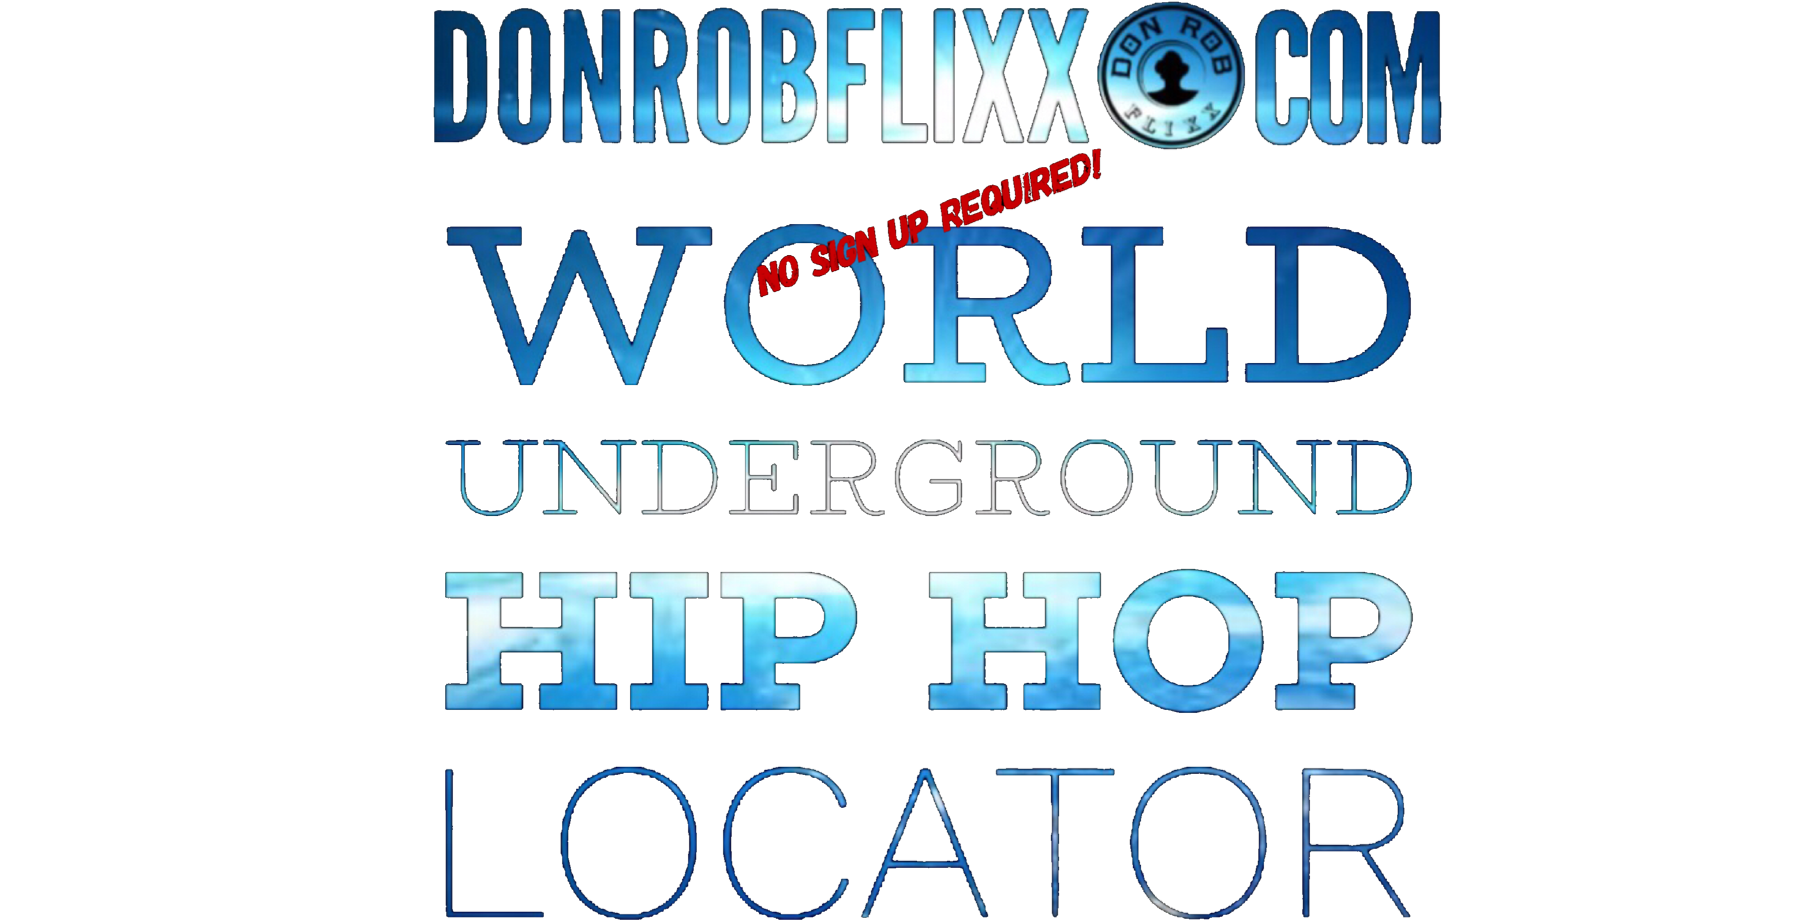 Hip-Hop Locator